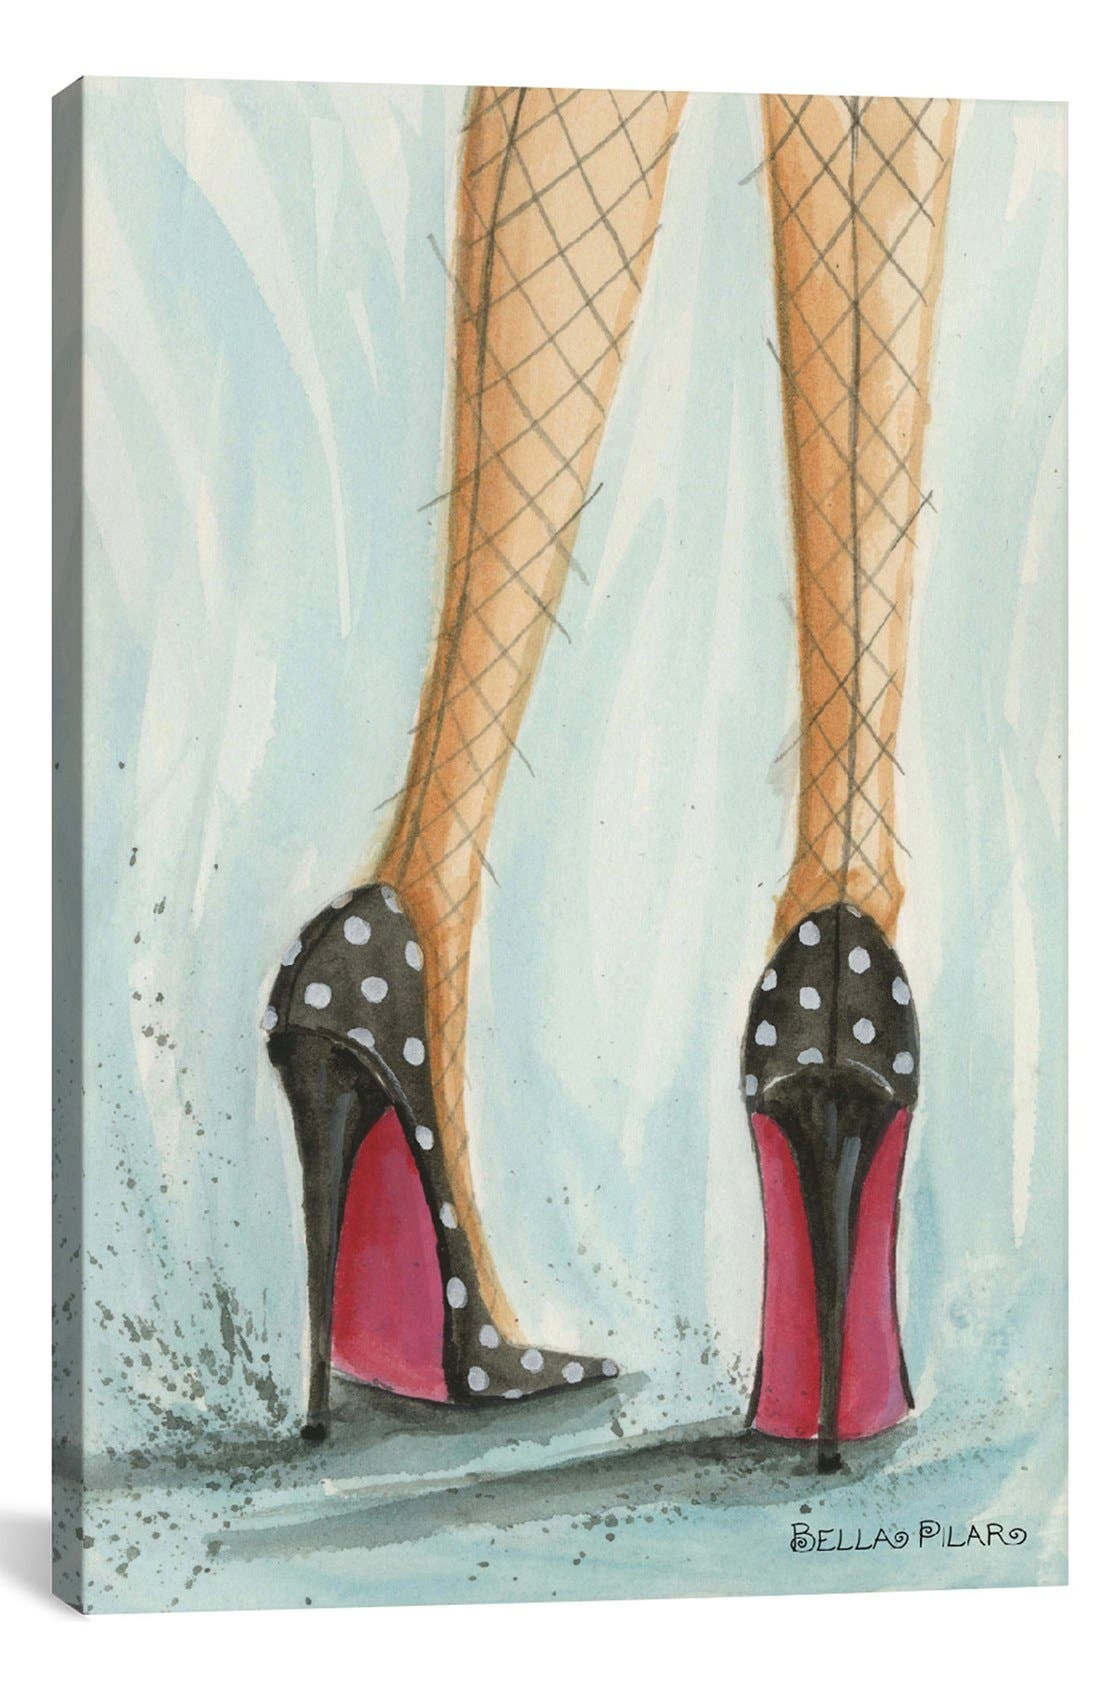 'Date Night: Polka Dot Heels - Bella Pilar' Giclée Print Canvas Art,                             Main thumbnail 1, color,                             400